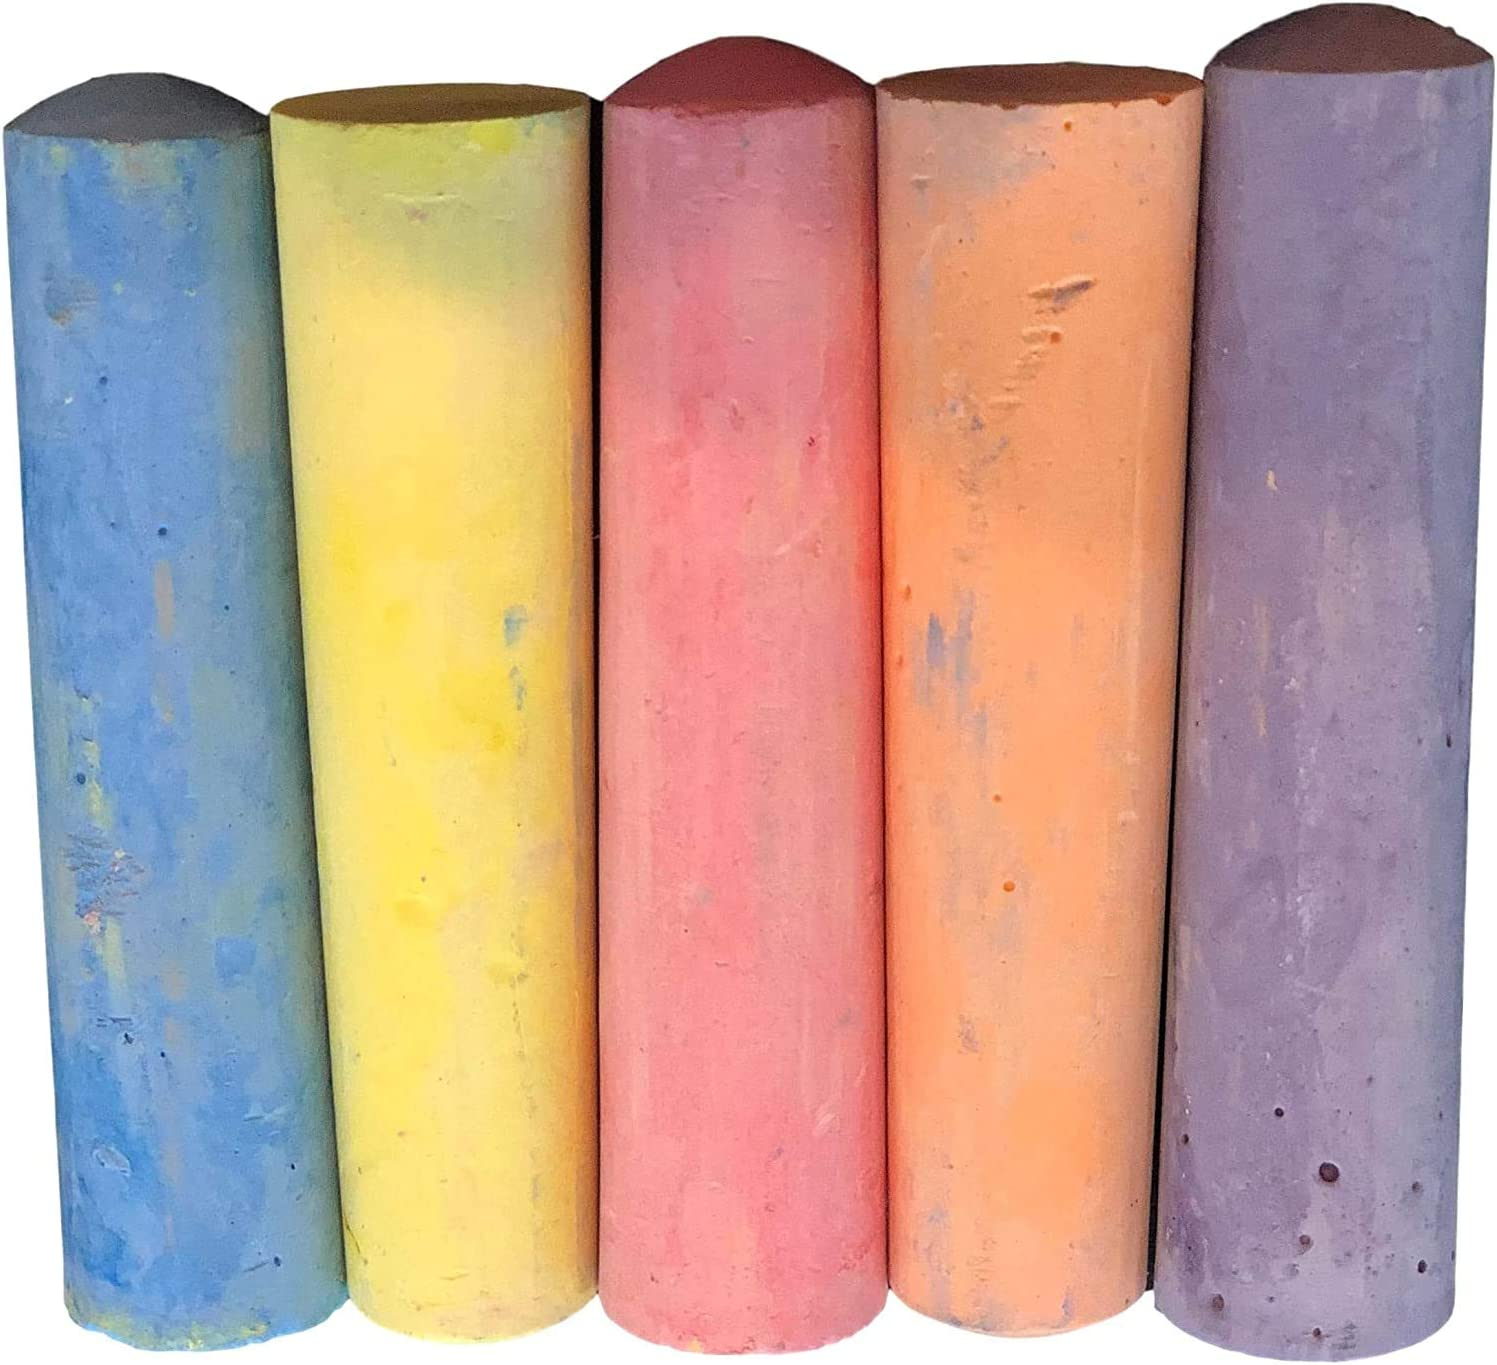 Pack Of 5 Jumbo Sidewalk Chalk For Outdoor Side Wa Complete Free Shipping low-pricing Kids Toddlers